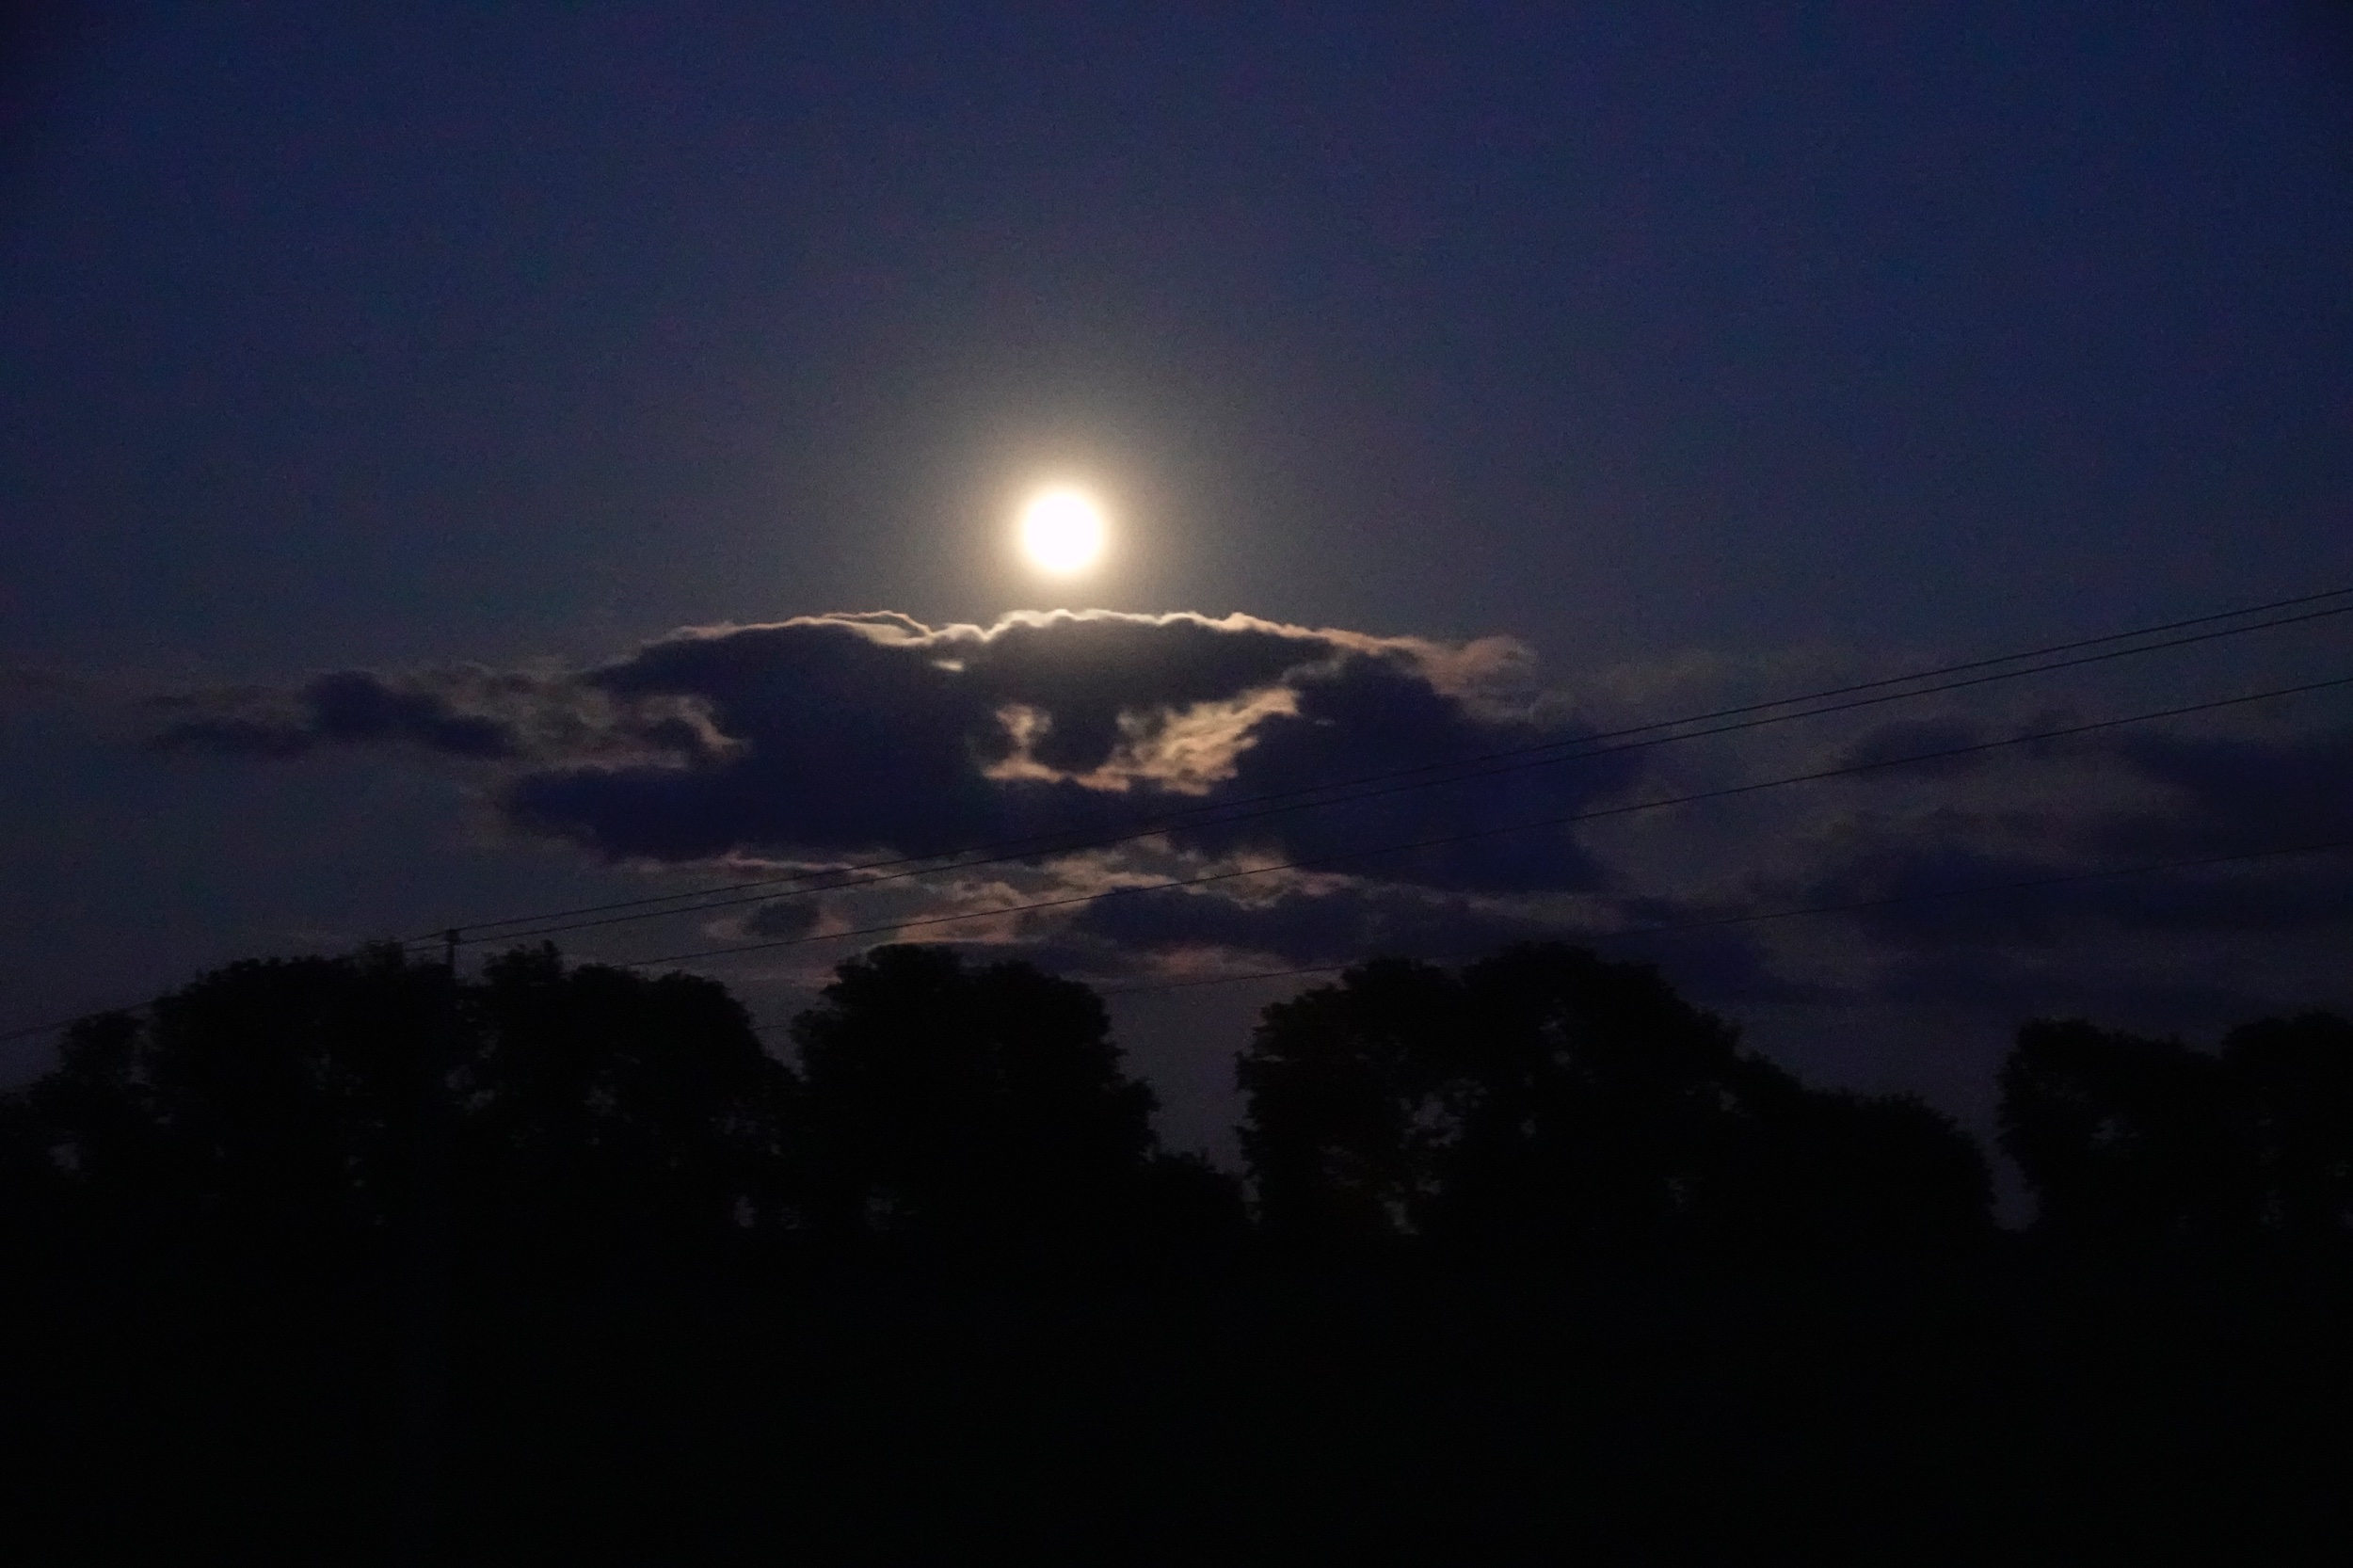 Well, it's a marvelous night for a moondance.